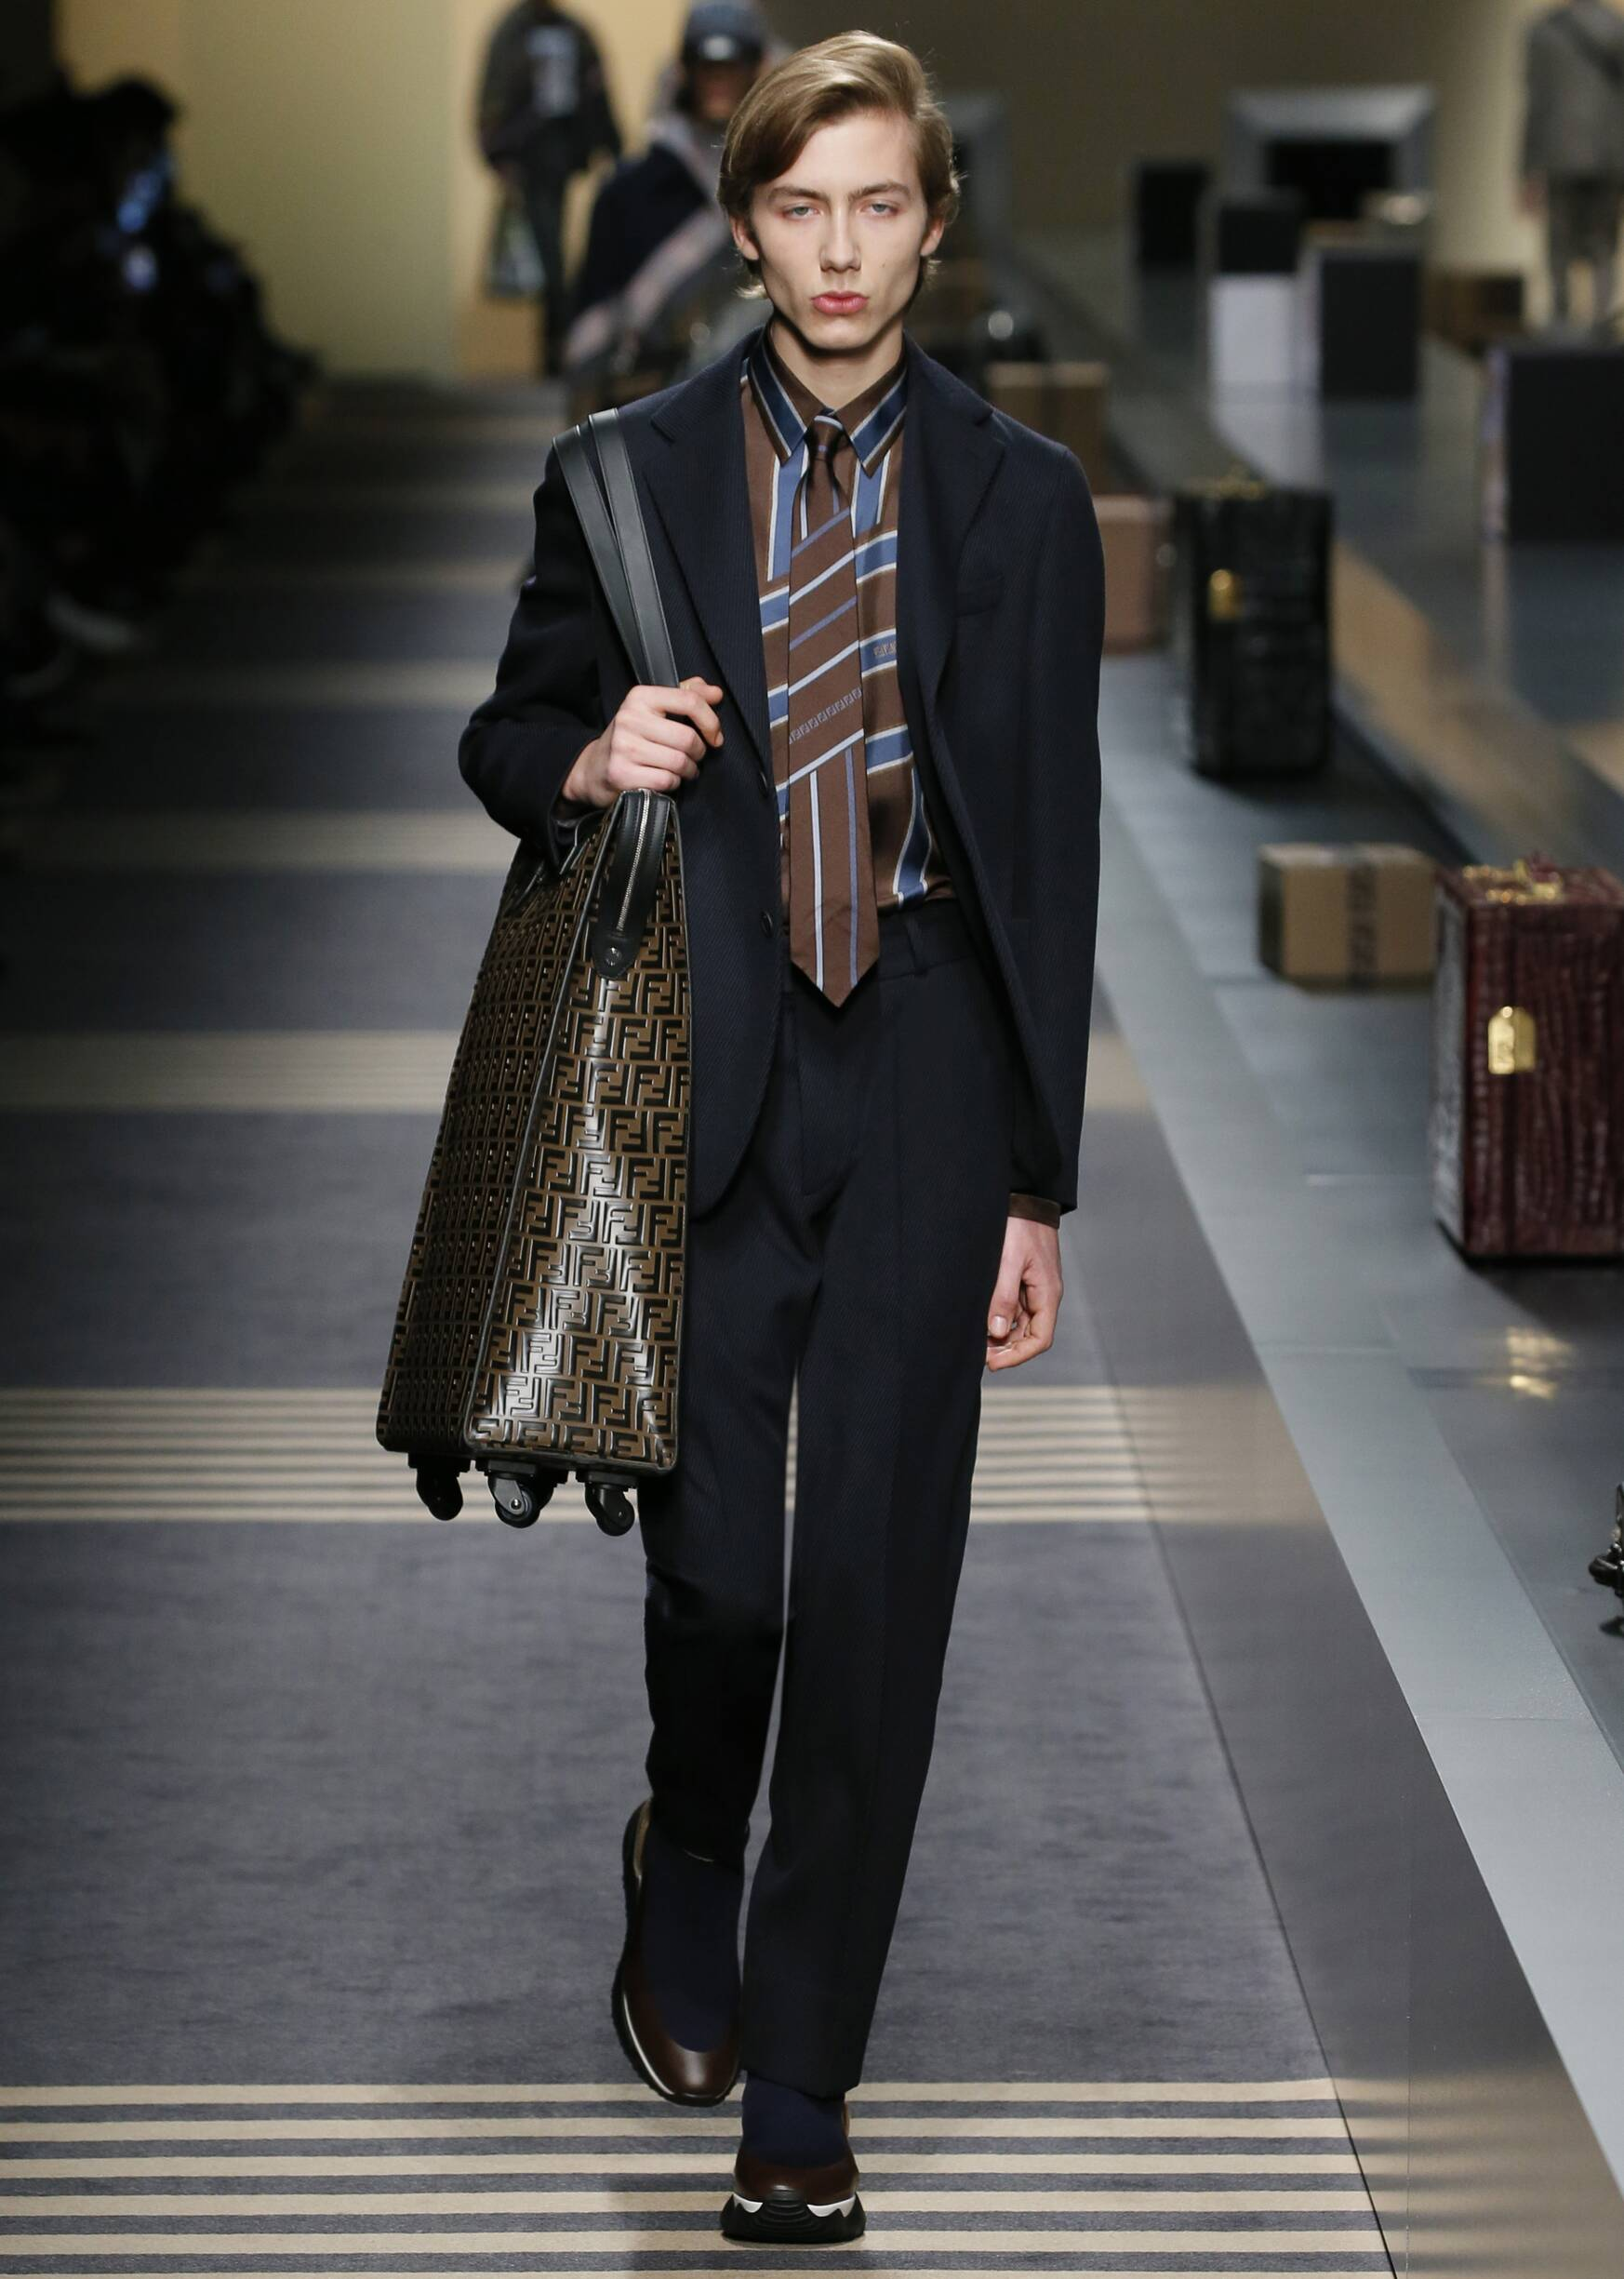 Man FW 2018-19 Fendi Fashion Show Milan